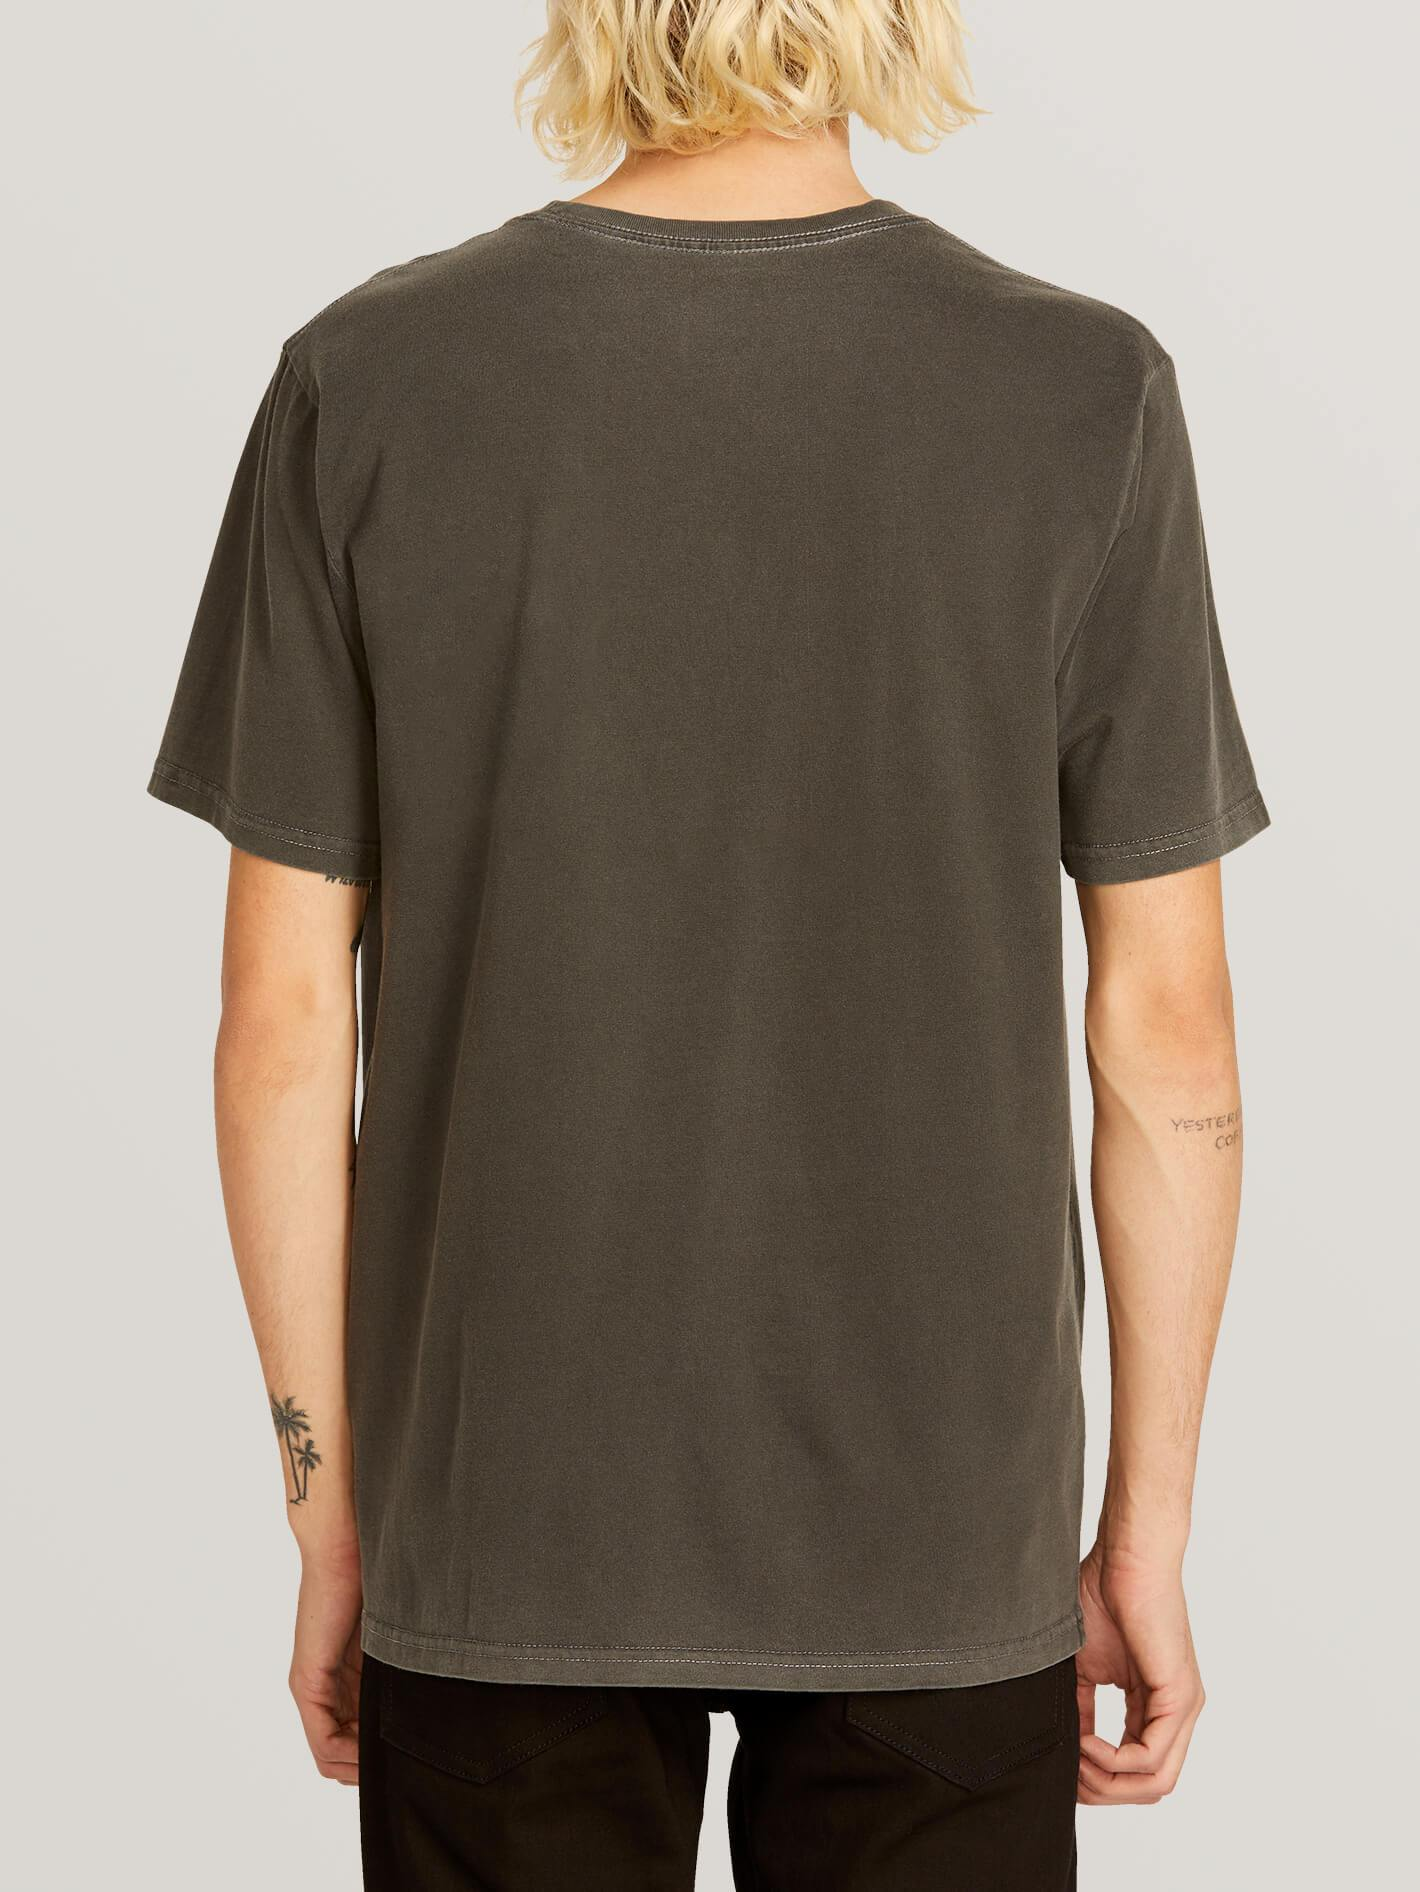 VOLCOM OVAL PATCH SS T